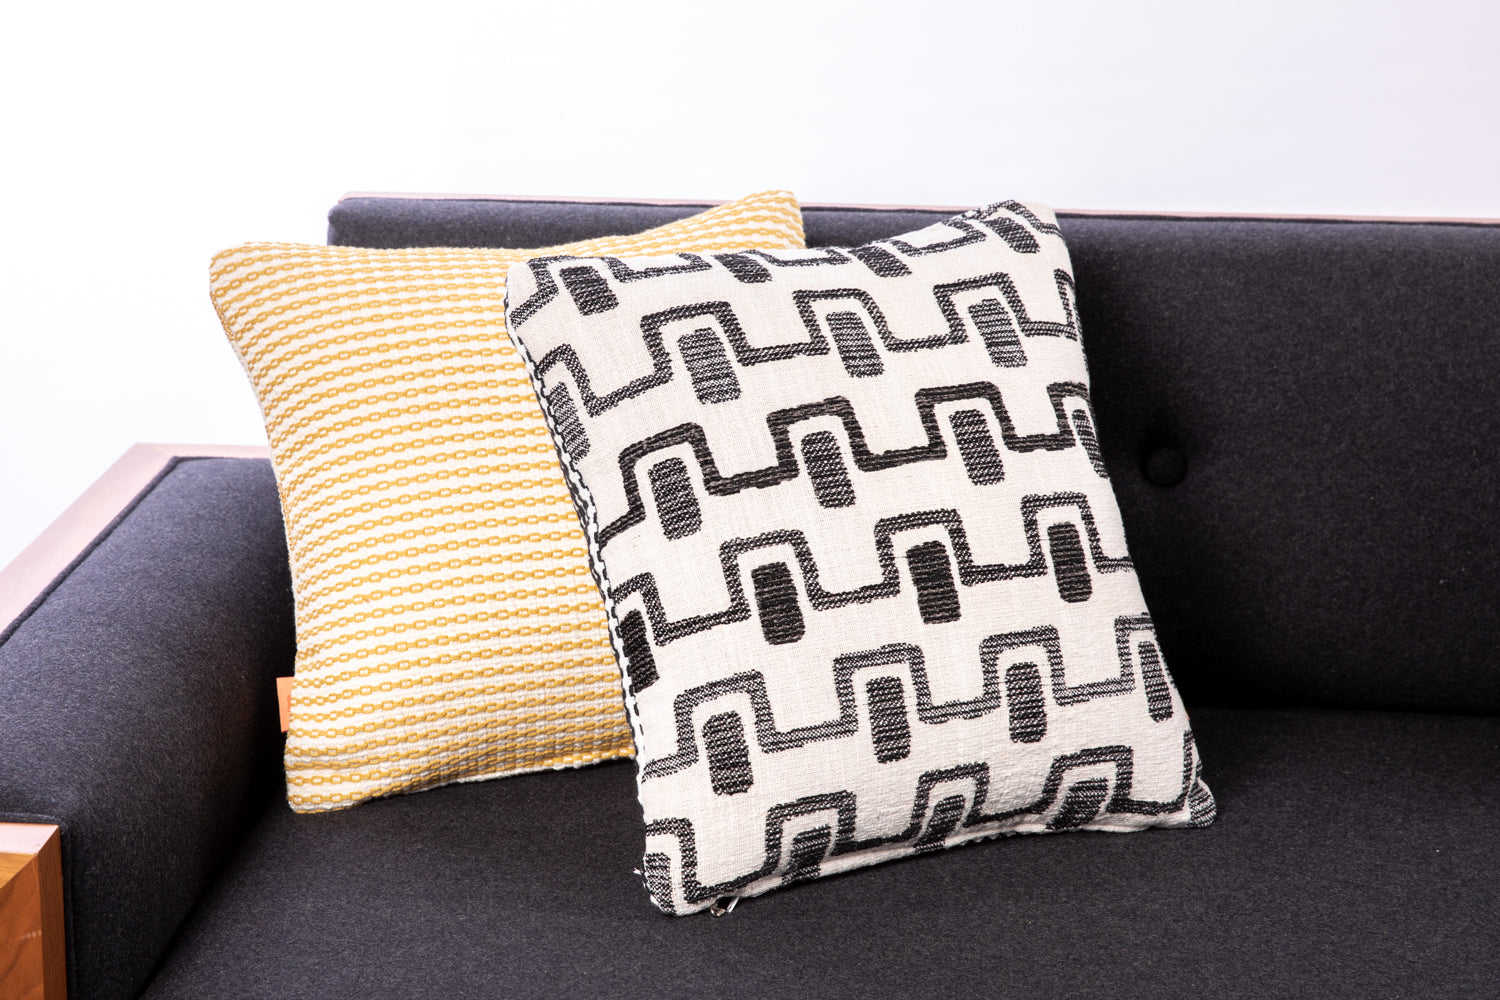 ffabb toss pillows RADG & Maxwell fabrics retro pattern